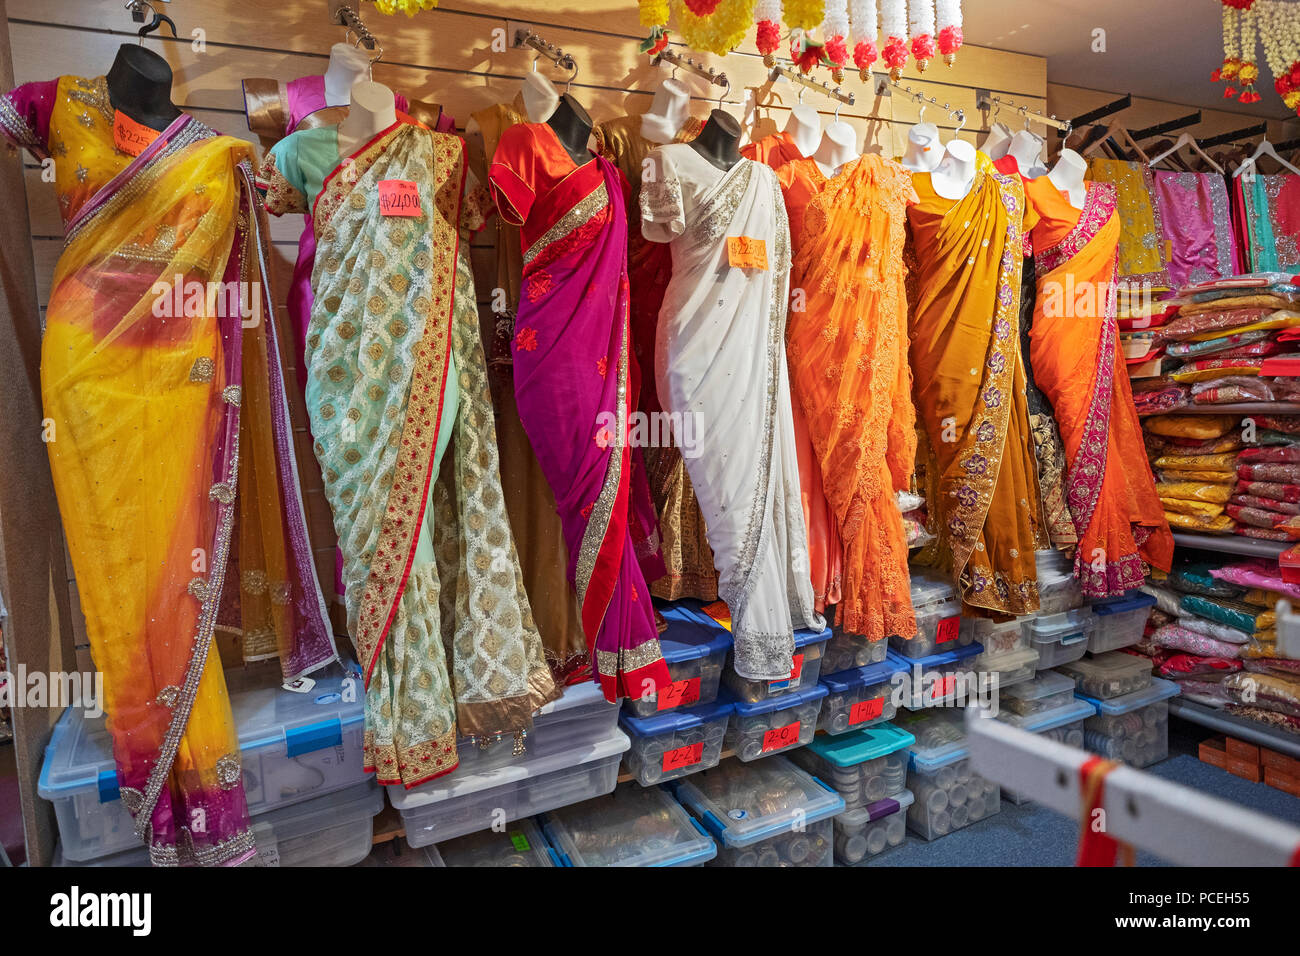 4e346feb604 Colourful saris for sale at Saheli s a Hindu Indian clothing shop on  Liberty ave. in Richmond Hill